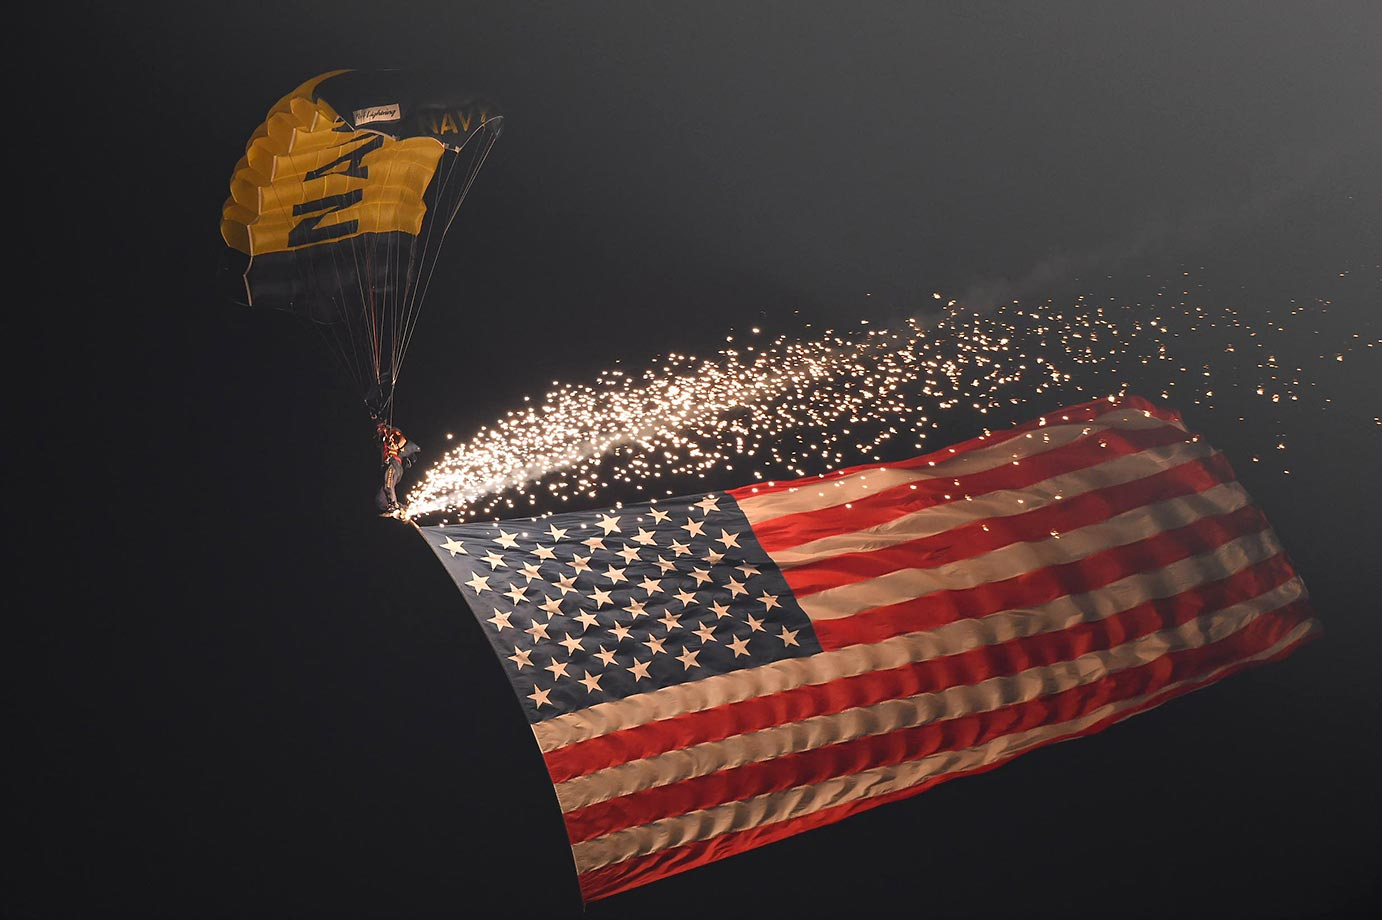 A member of the United States Navy parachutes into the Los Angeles Memorial Coliseum.